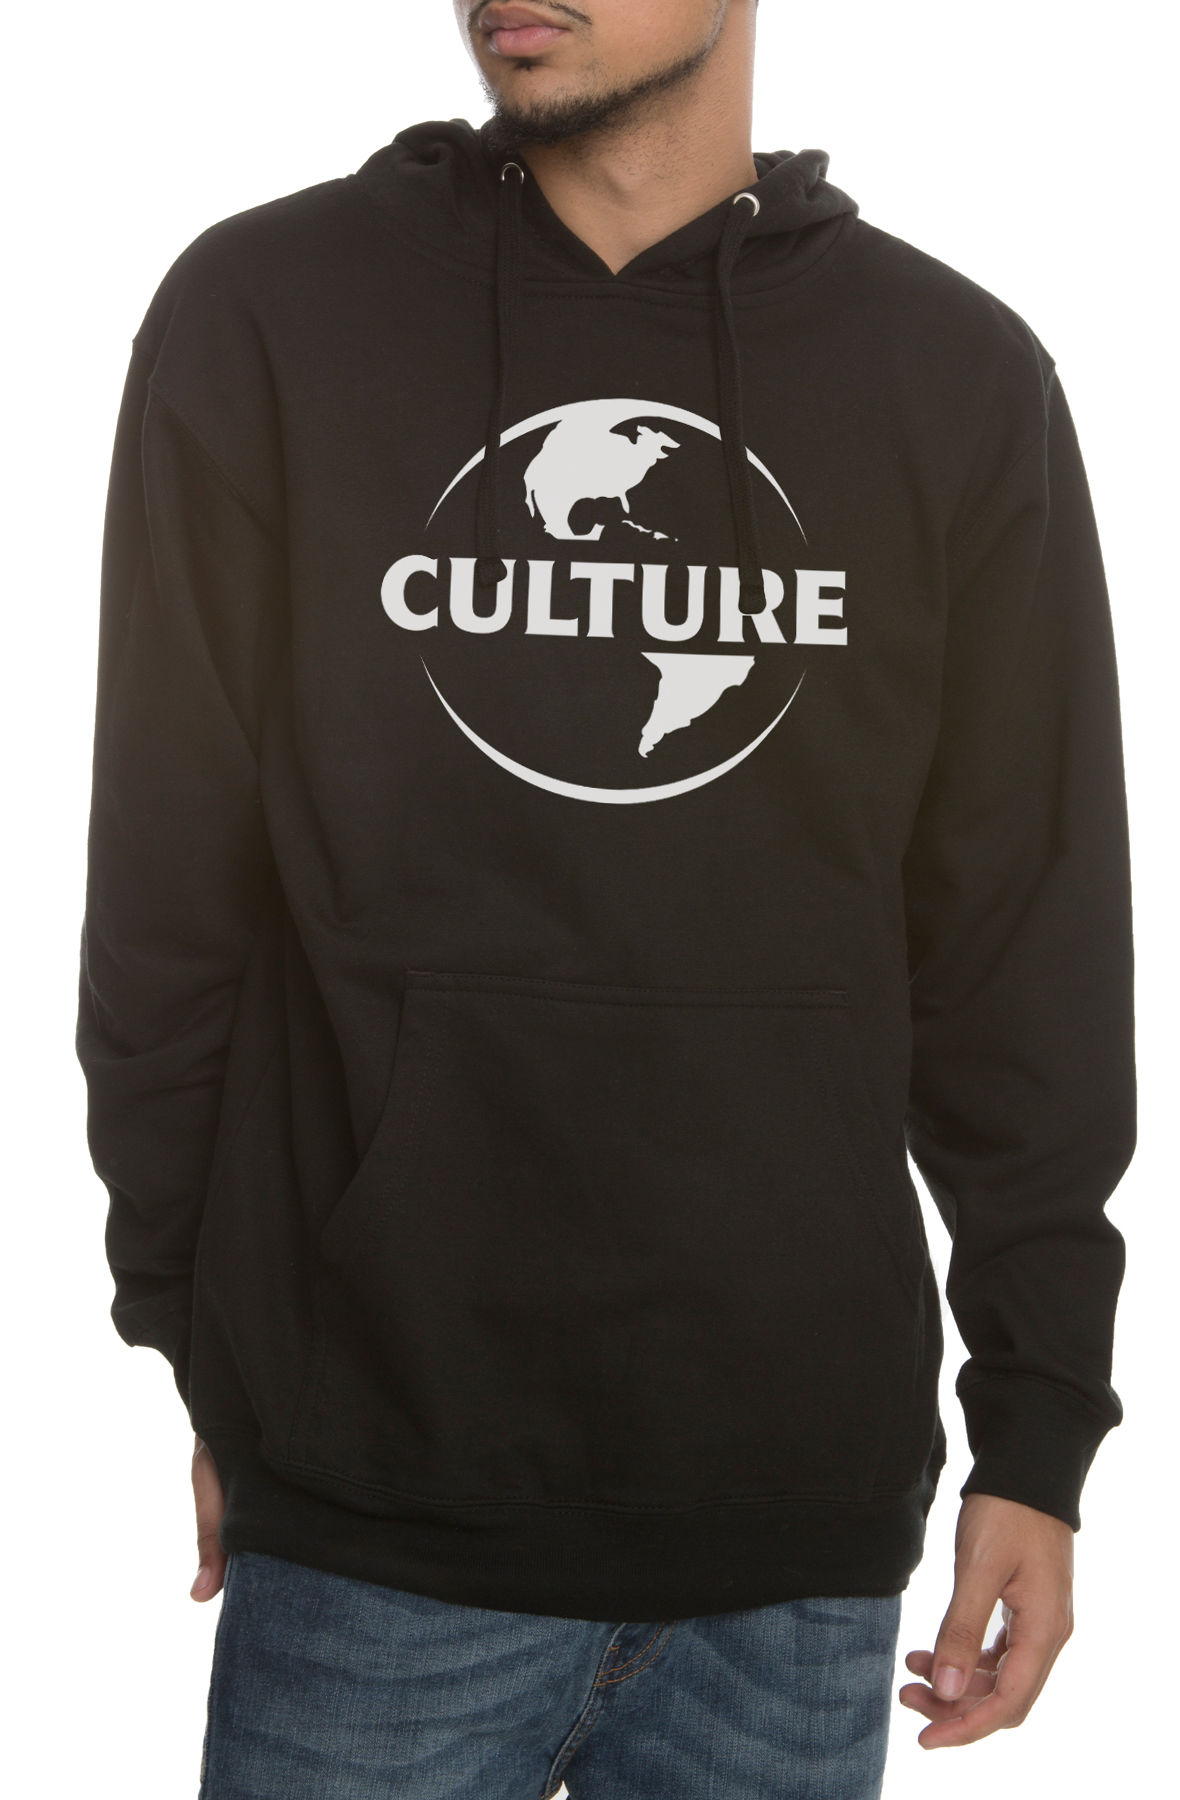 Image of The Culture Hoodie in Black